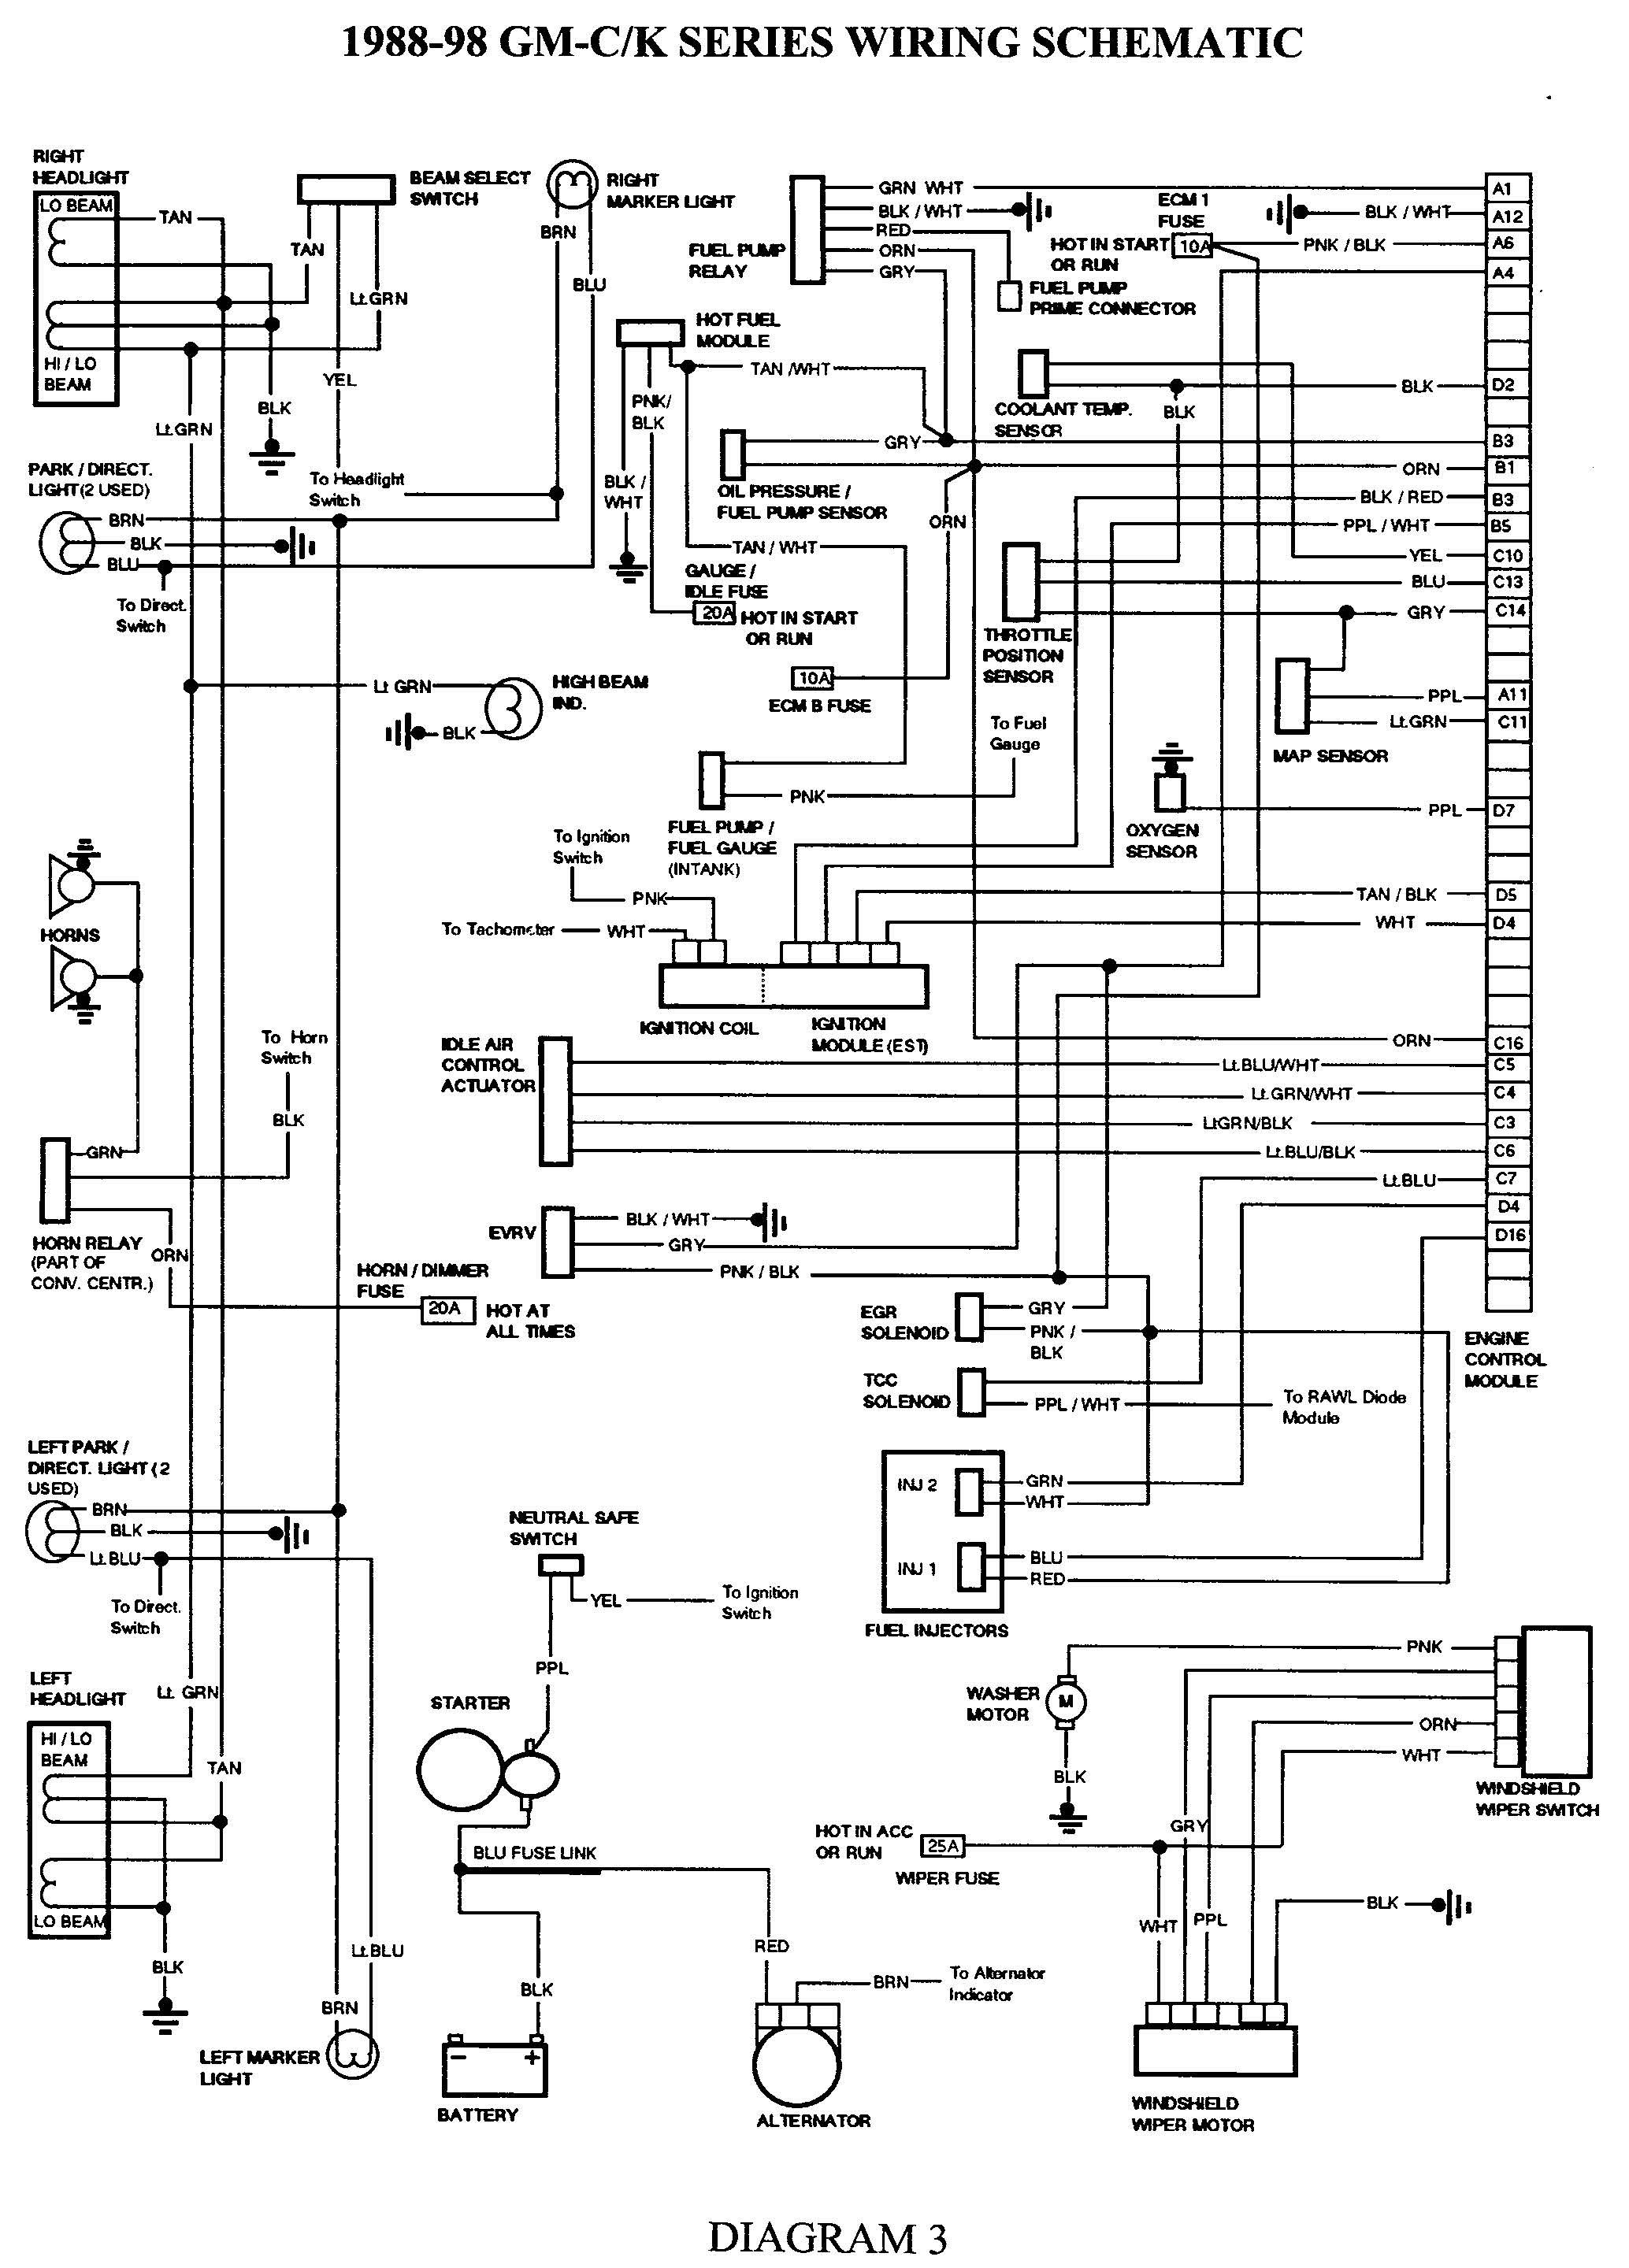 1986 chevrolet c10 5 7 v8 engine wiring diagram chevrolet c 1500 rh  pinterest com